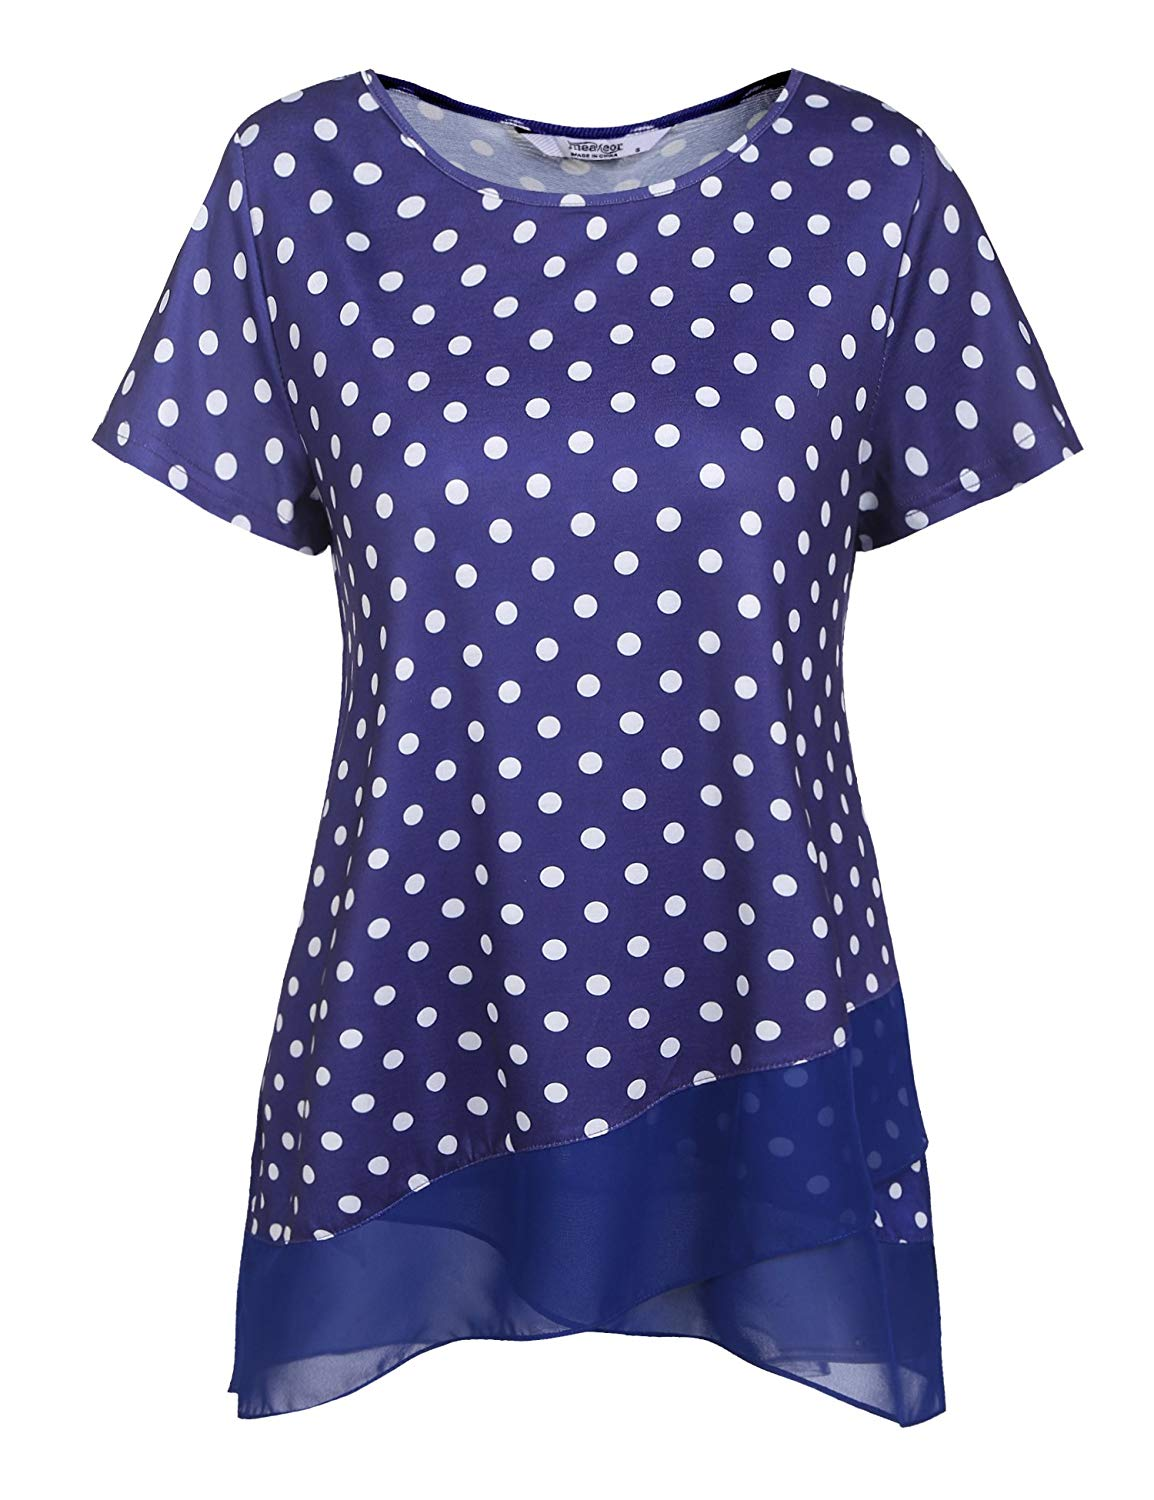 8b69b1be723e8 Get Quotations · Venena Womens Short Sleeve Polka Dots Dressy Tops Flowy  Patchwork A Line Casual Layered Tunic Tops